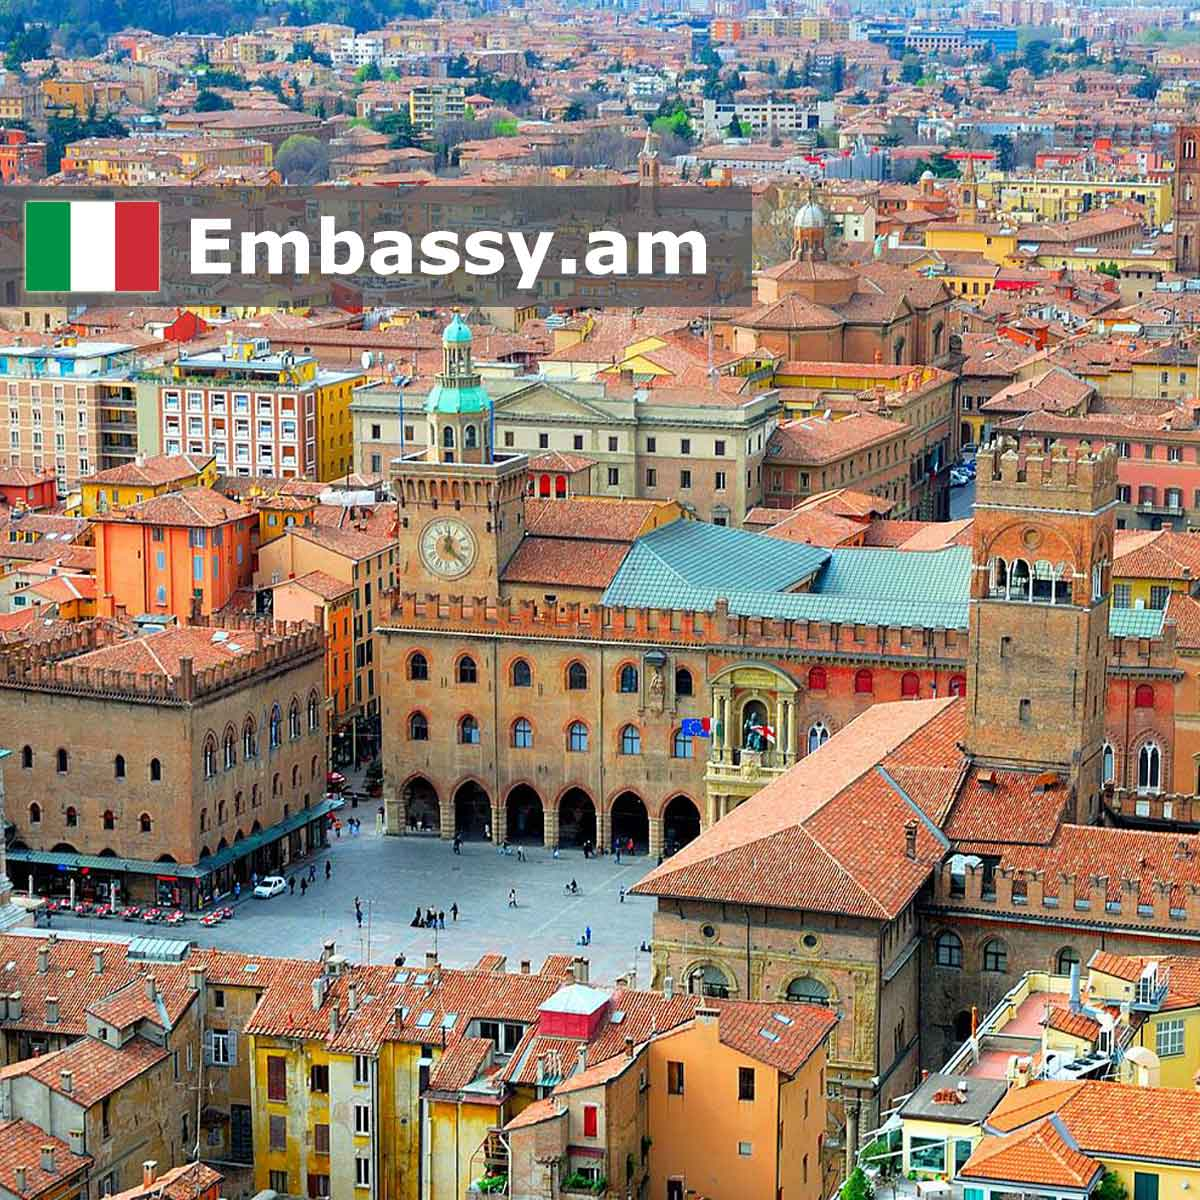 Bologna - Hotels in Italy - Embassy.am